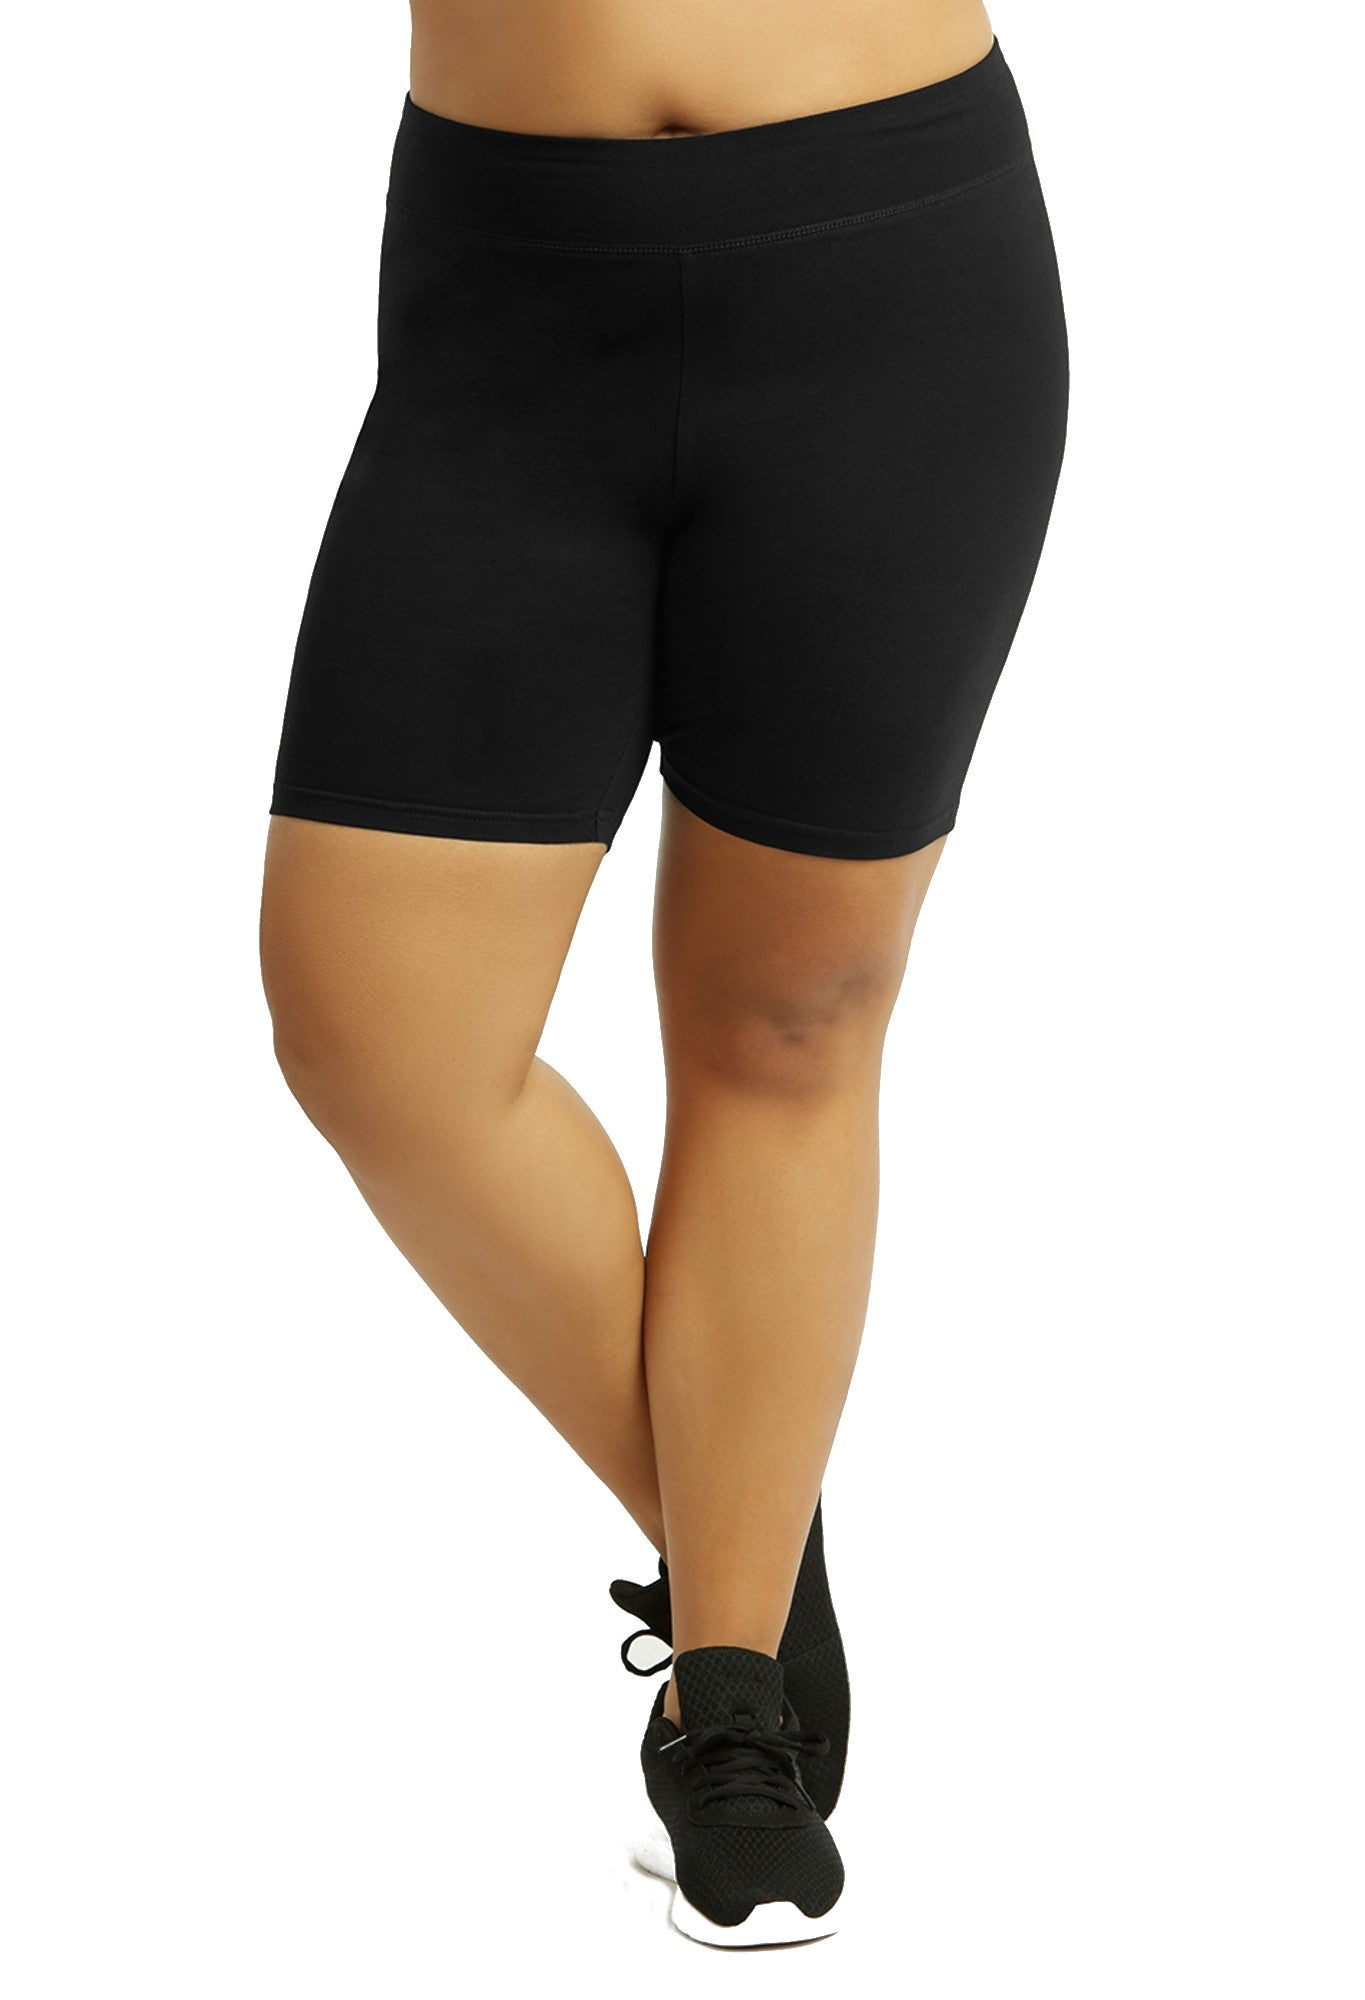 Womens Bike Shorts,Womens plus size shorts,Womens plus size activewear,Womens Black Bike Shorts,Womens plus size workout clothes